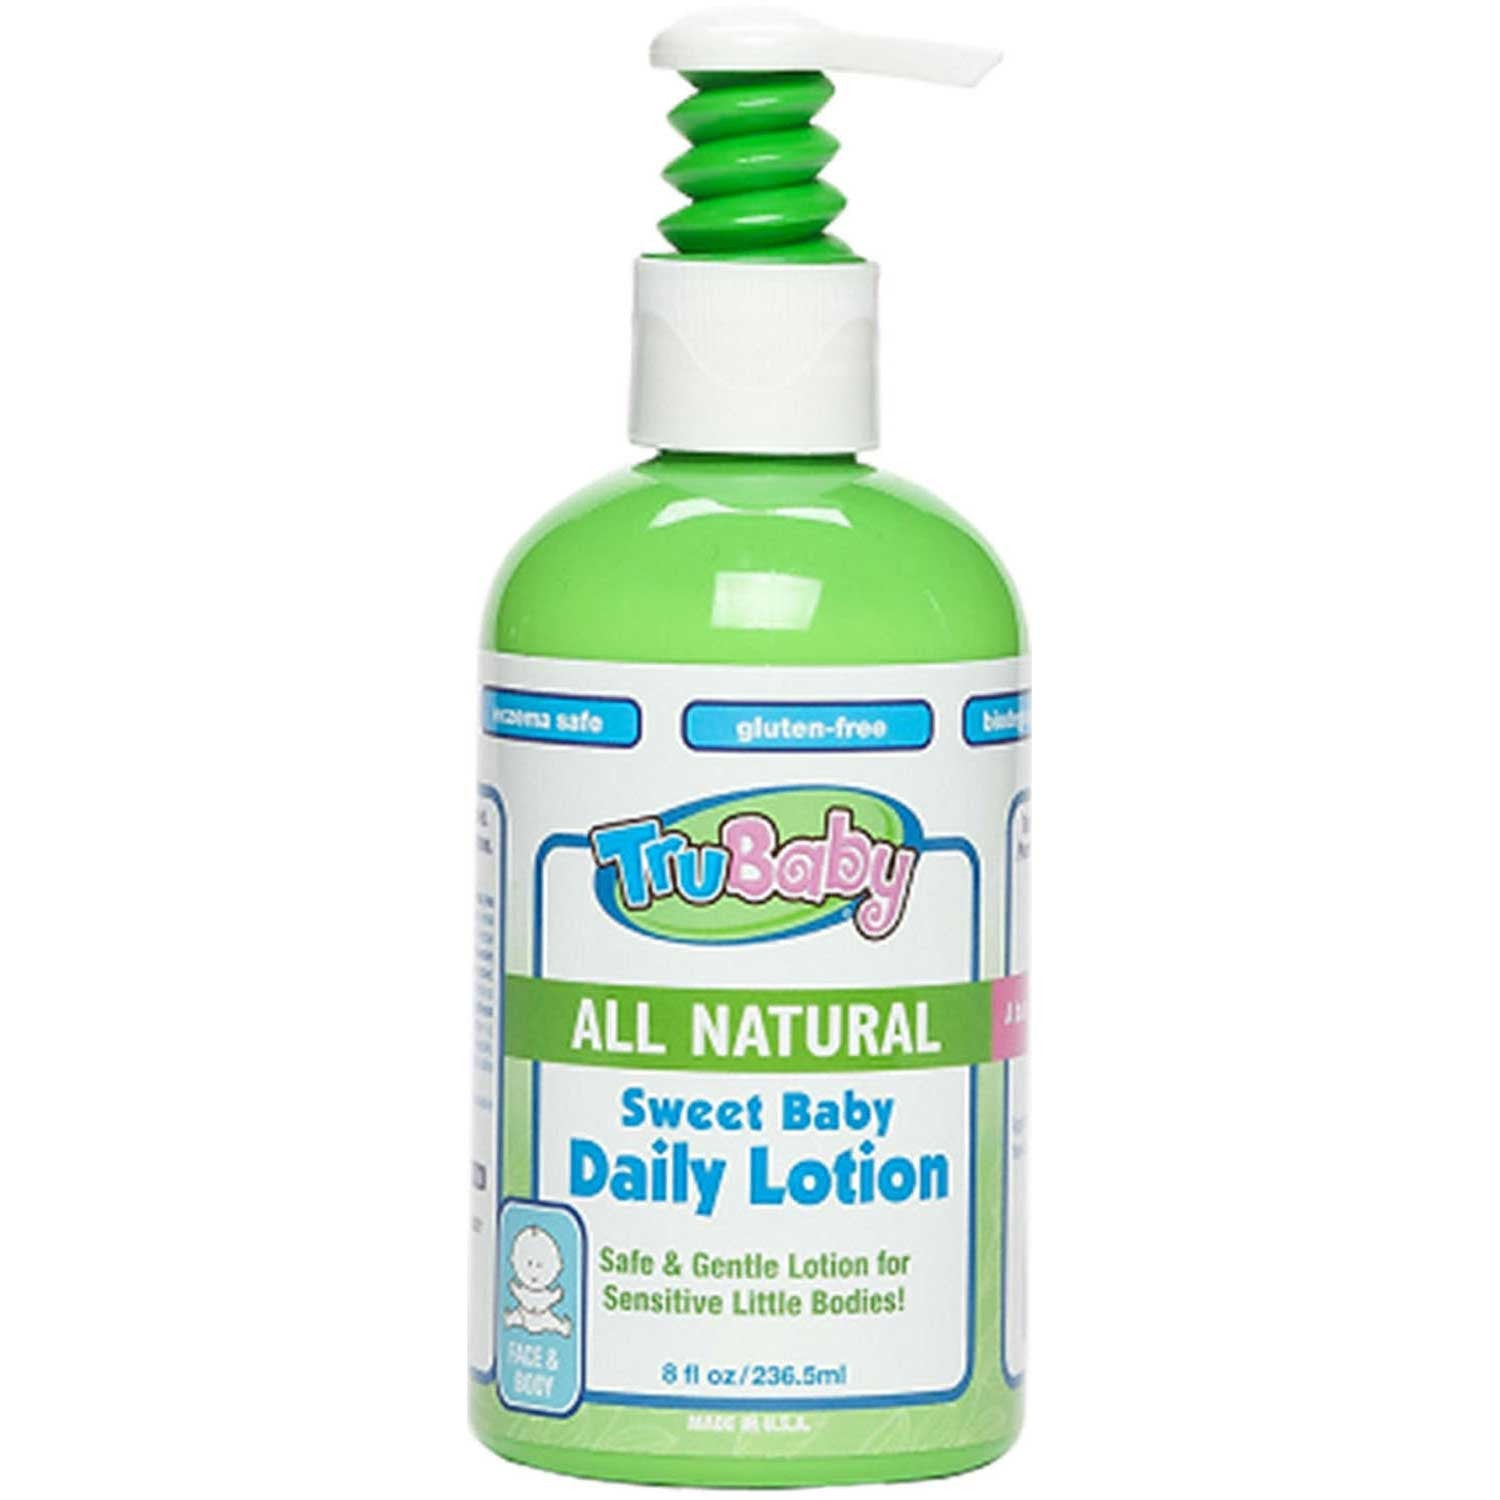 TruBaby Sweet Baby Daily Lotion, 236.5 ml-NaturesWisdom